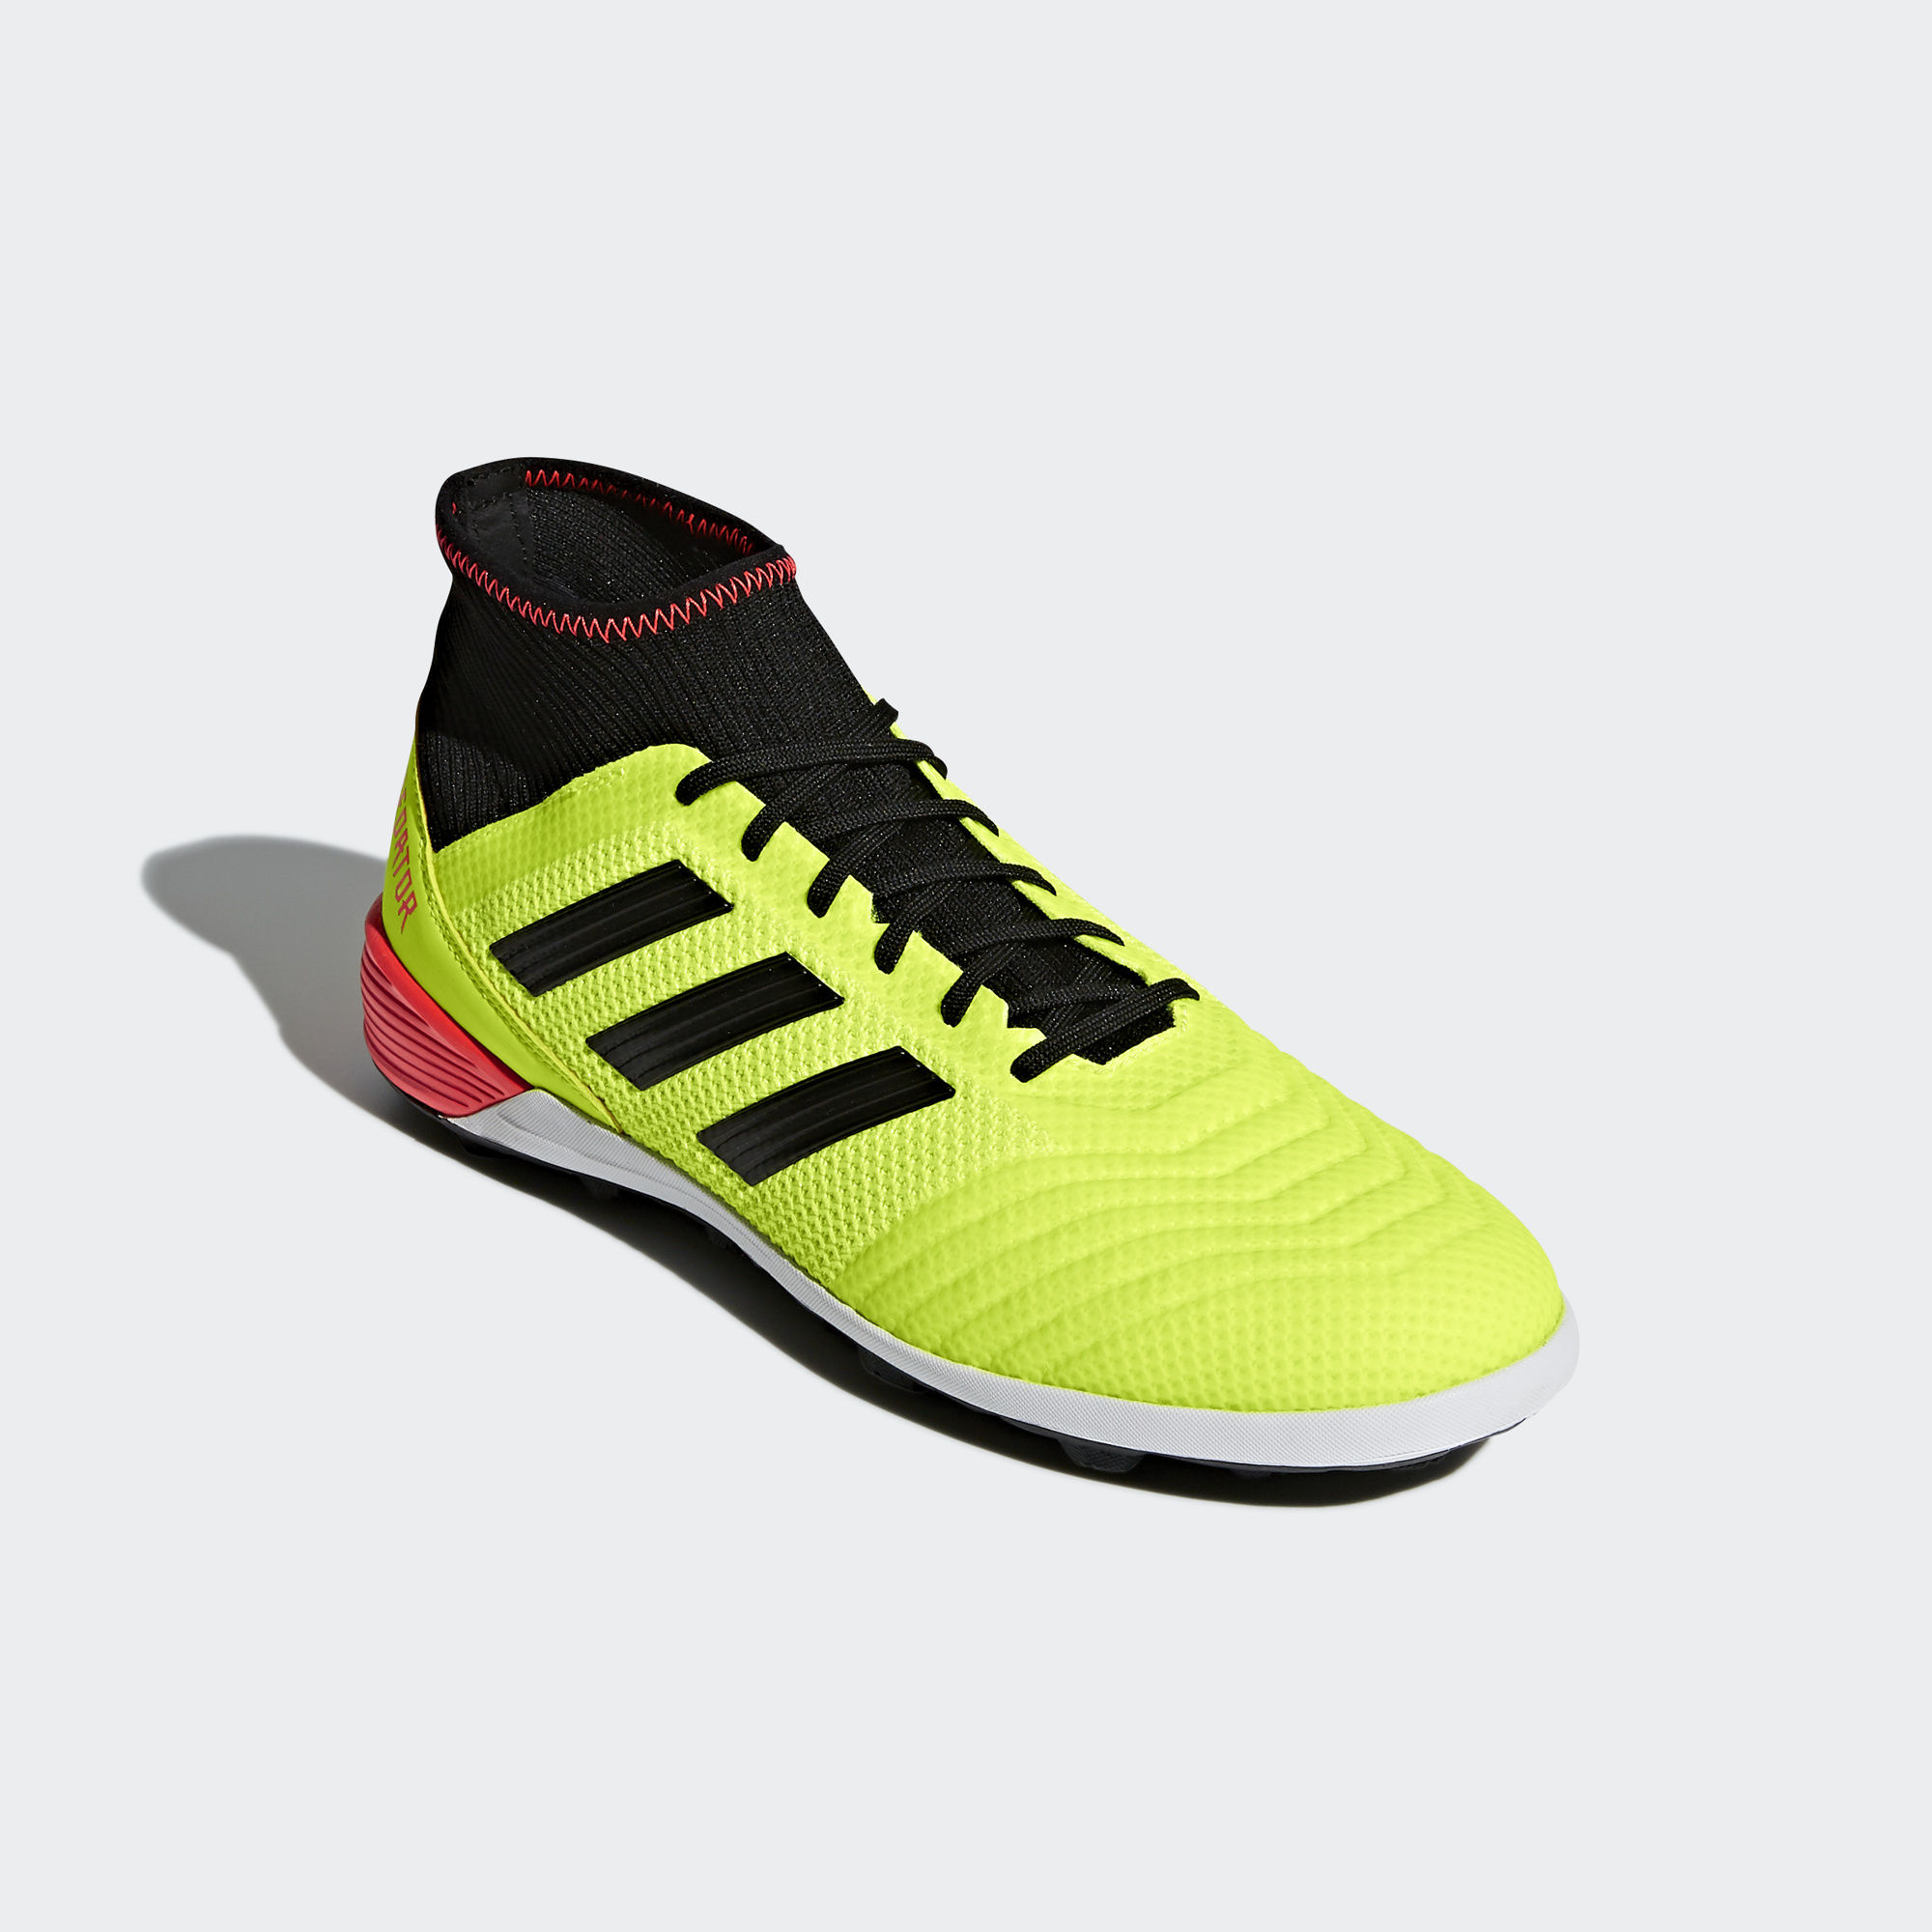 huge selection of 5a1fb e907c ... Click to enlarge image  adidaspredatortango18.3tfenergymodesolaryellowcoreblacksolarrede.jpg  ...